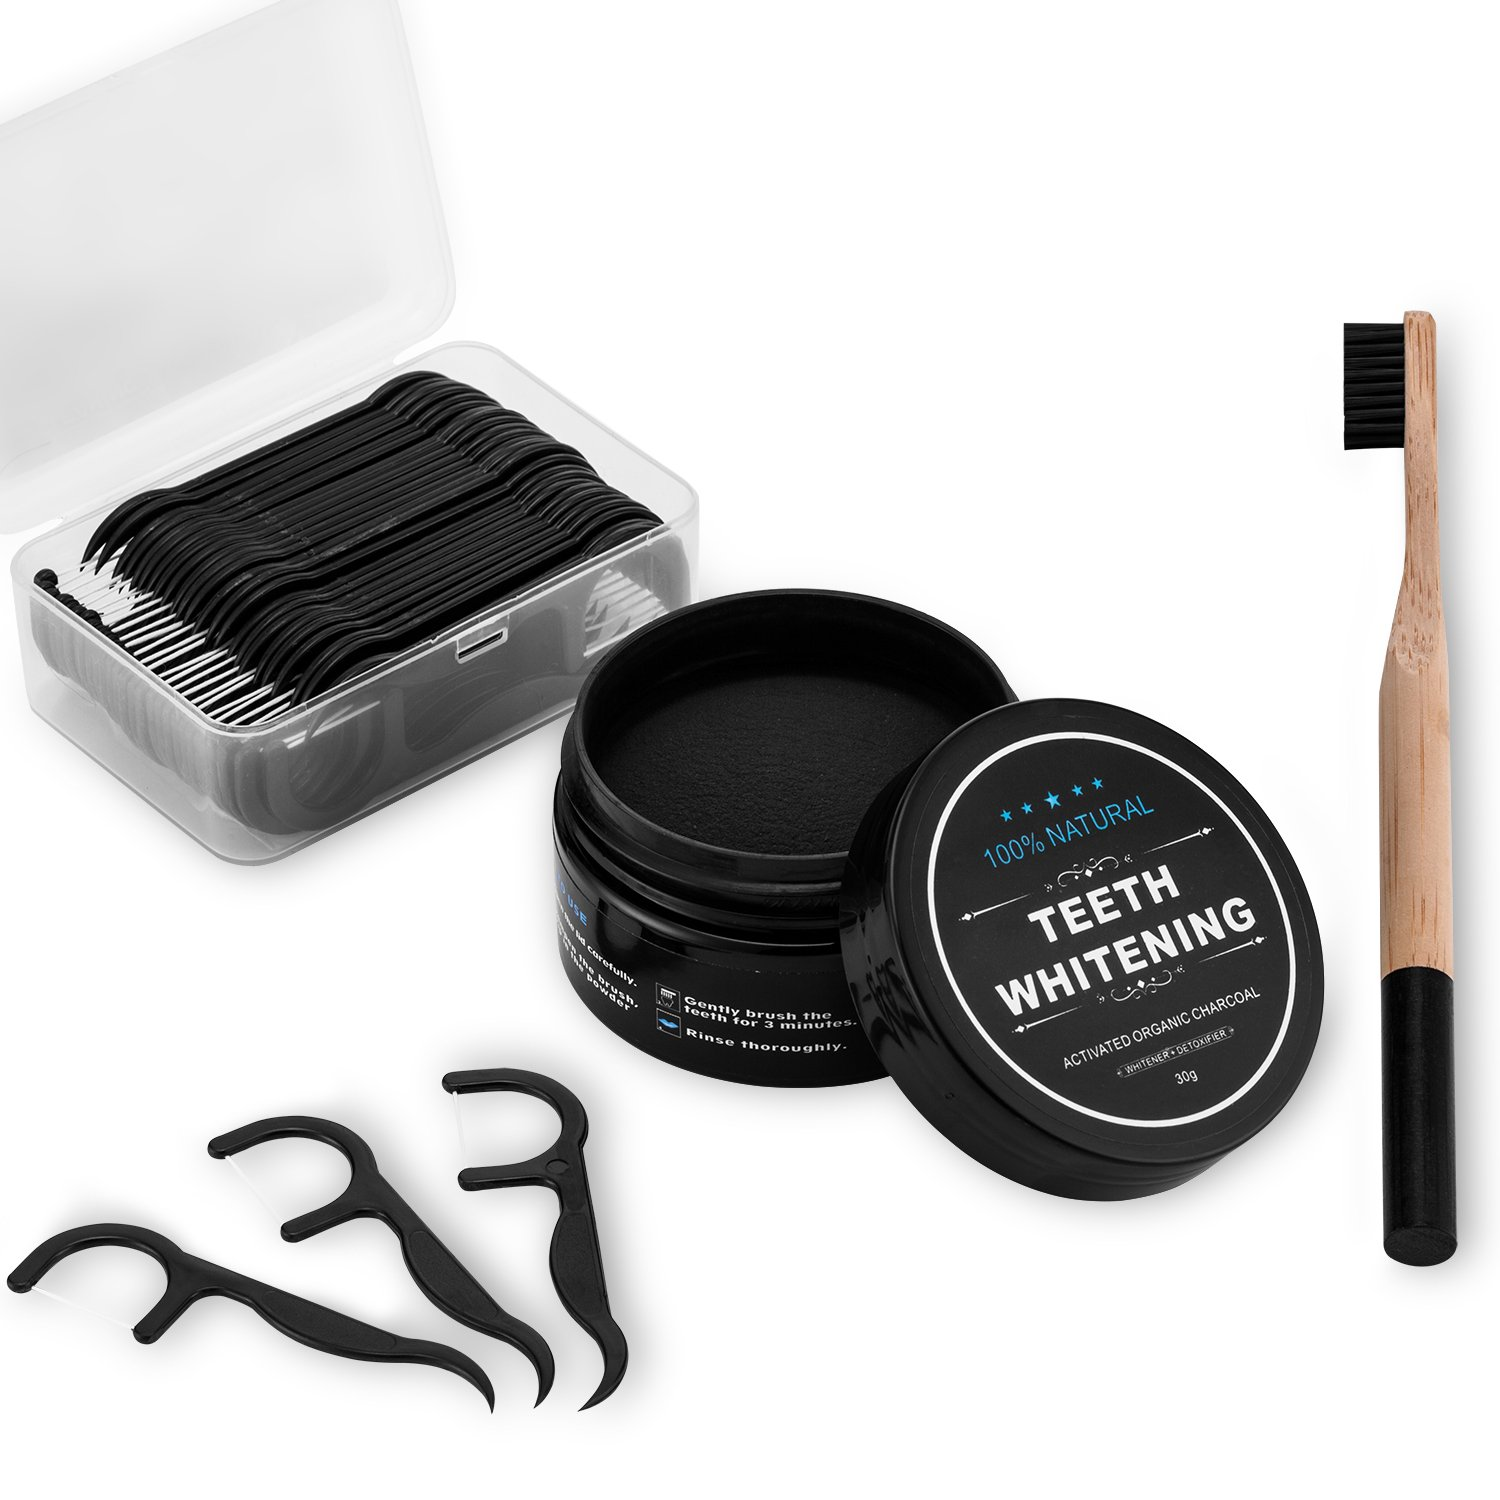 Natural Teeth Whitening Charcoal Powder (30g) + Bamboo Toothbrush + Dental Floss Picks (45 pcs) for Brighter and Healthier Teeth